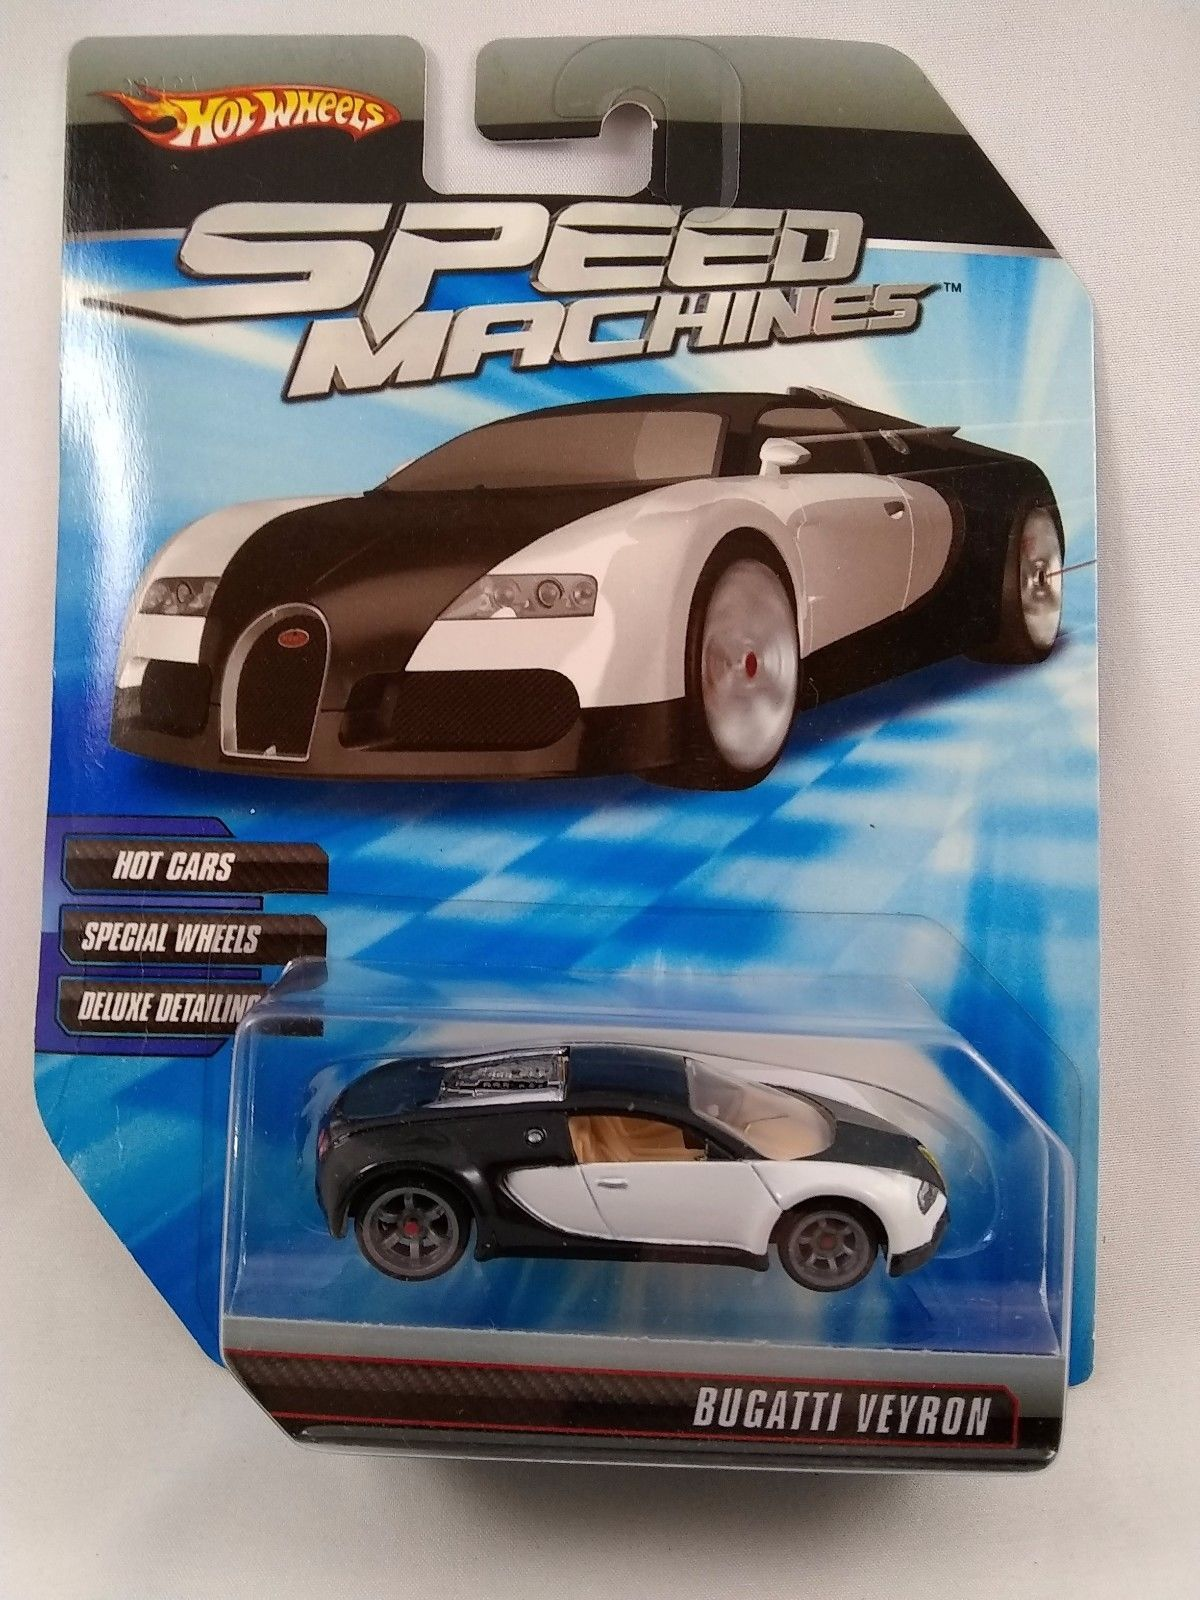 b4b914edd422f9b9df1de629319550c0 Mesmerizing Hot Wheels Speed Machines Lamborghini Countach Cars Trend